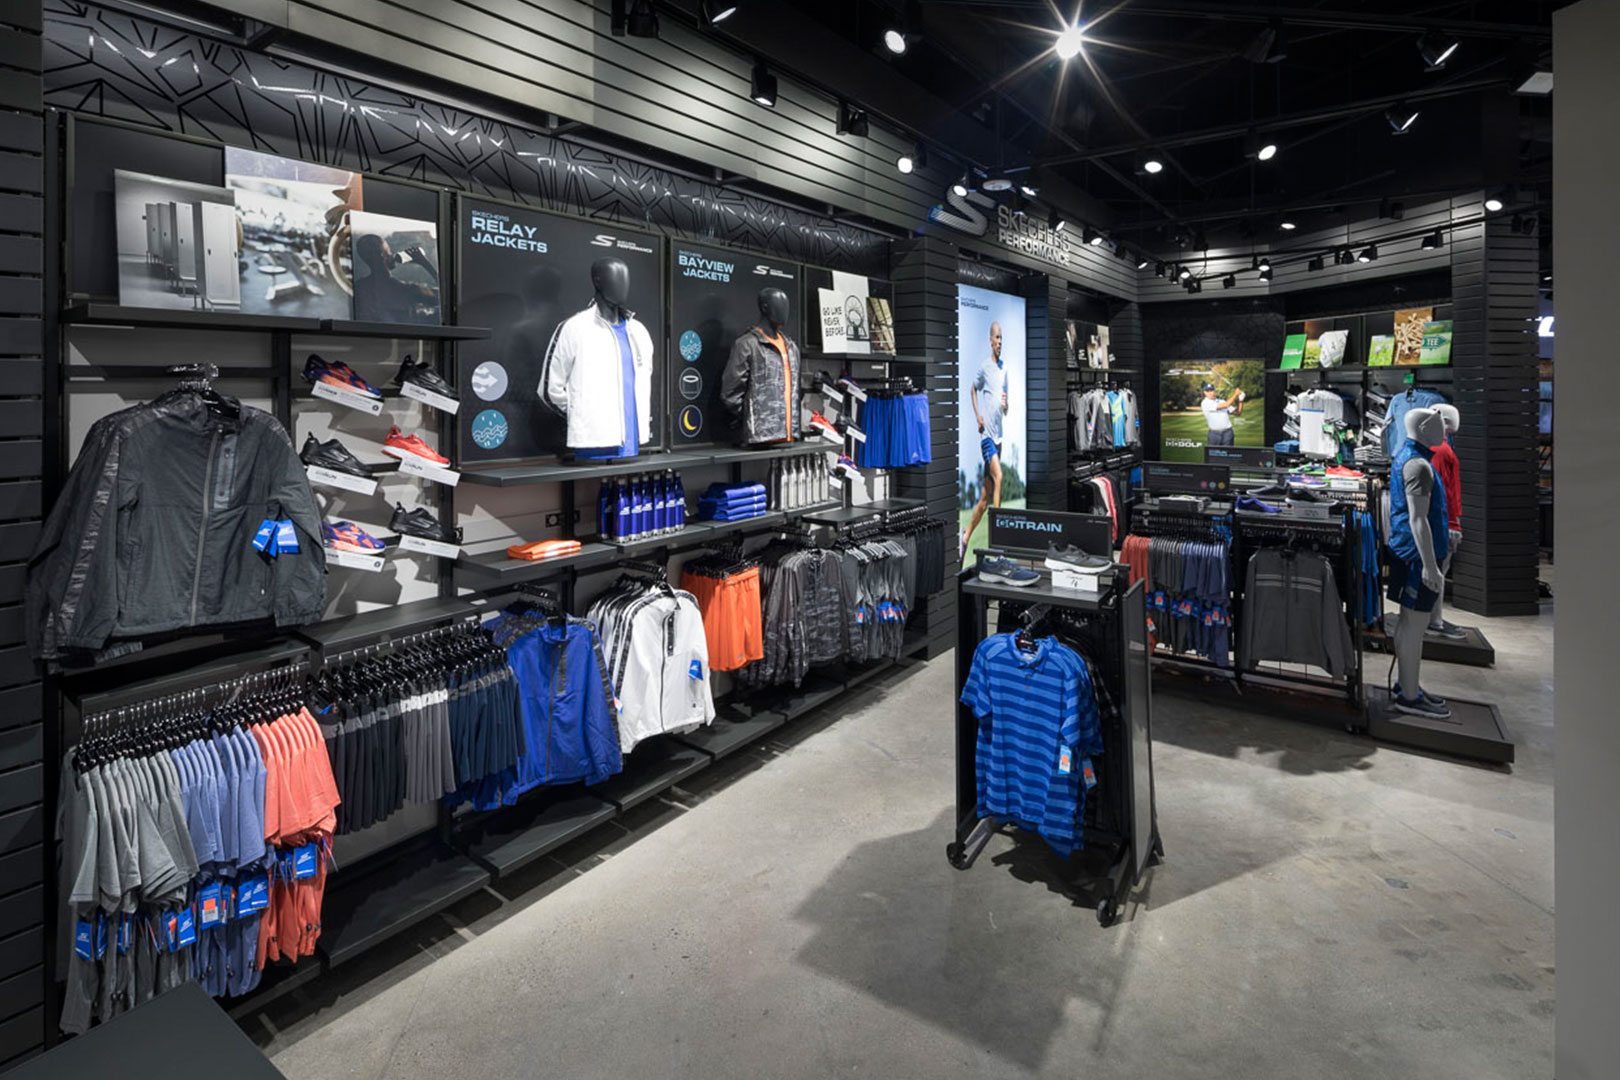 Skechers athletic apparel displays